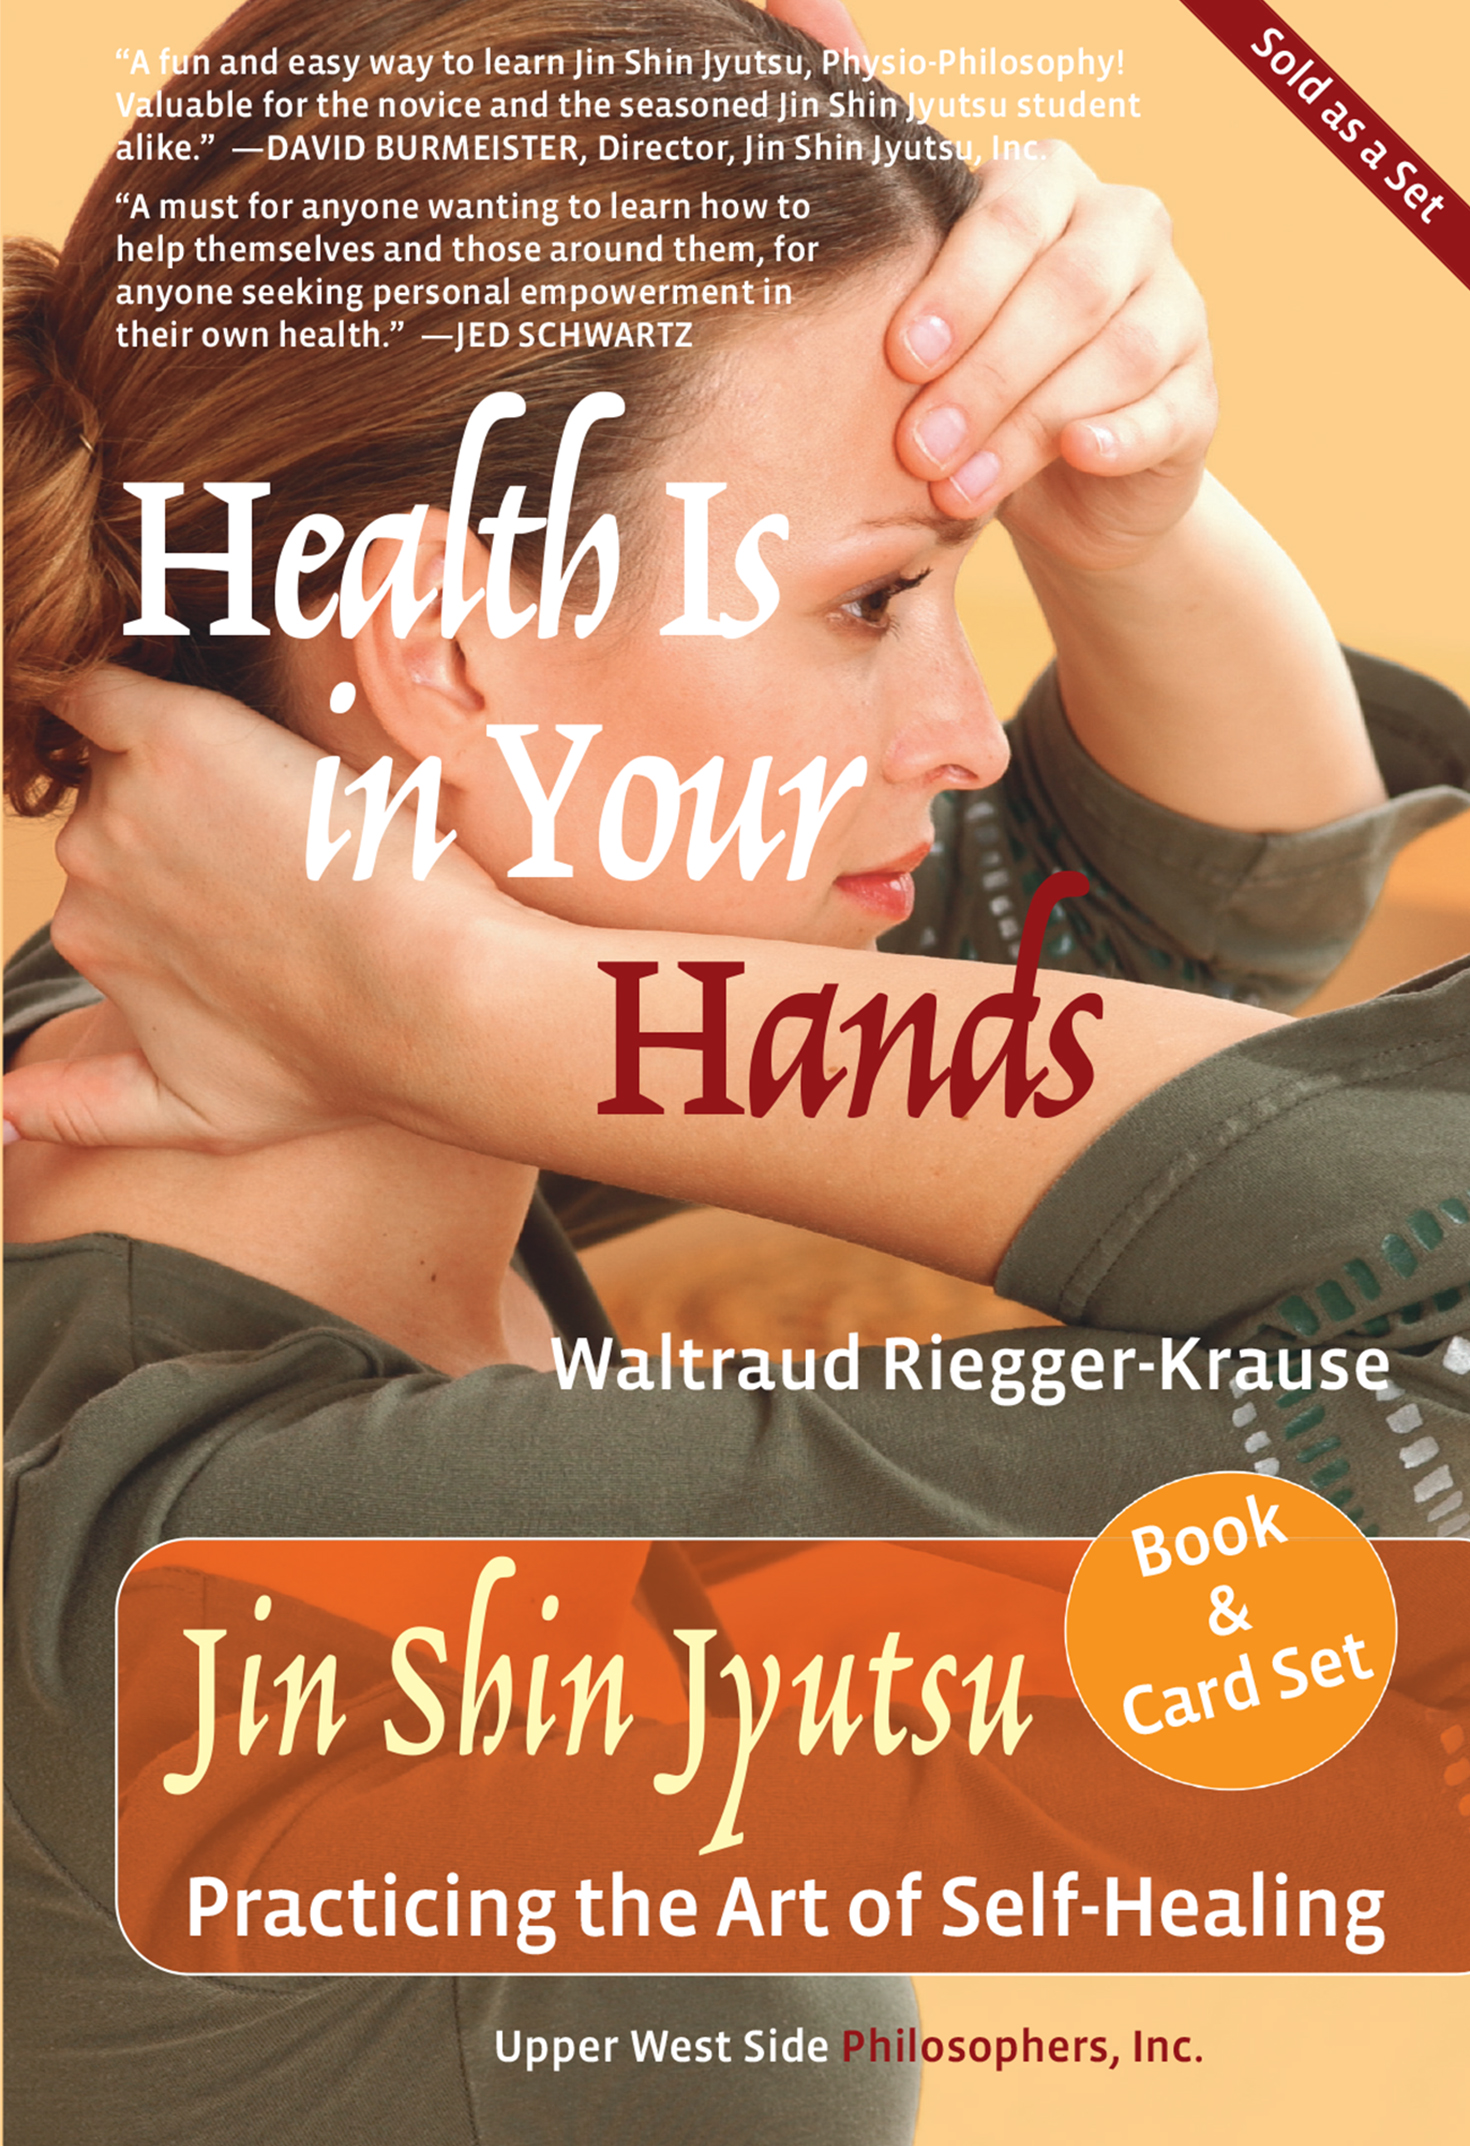 Health Is in Your Hands: Jin Shin Jyutsu - Practicing the Art of Self-Healing (with 51 Flash Cards for the Hands-on Practice of Jin Shin Jyutsu) (Upper West Side Philosophers, Inc., 2014) By Waltraud Riegger-Krause